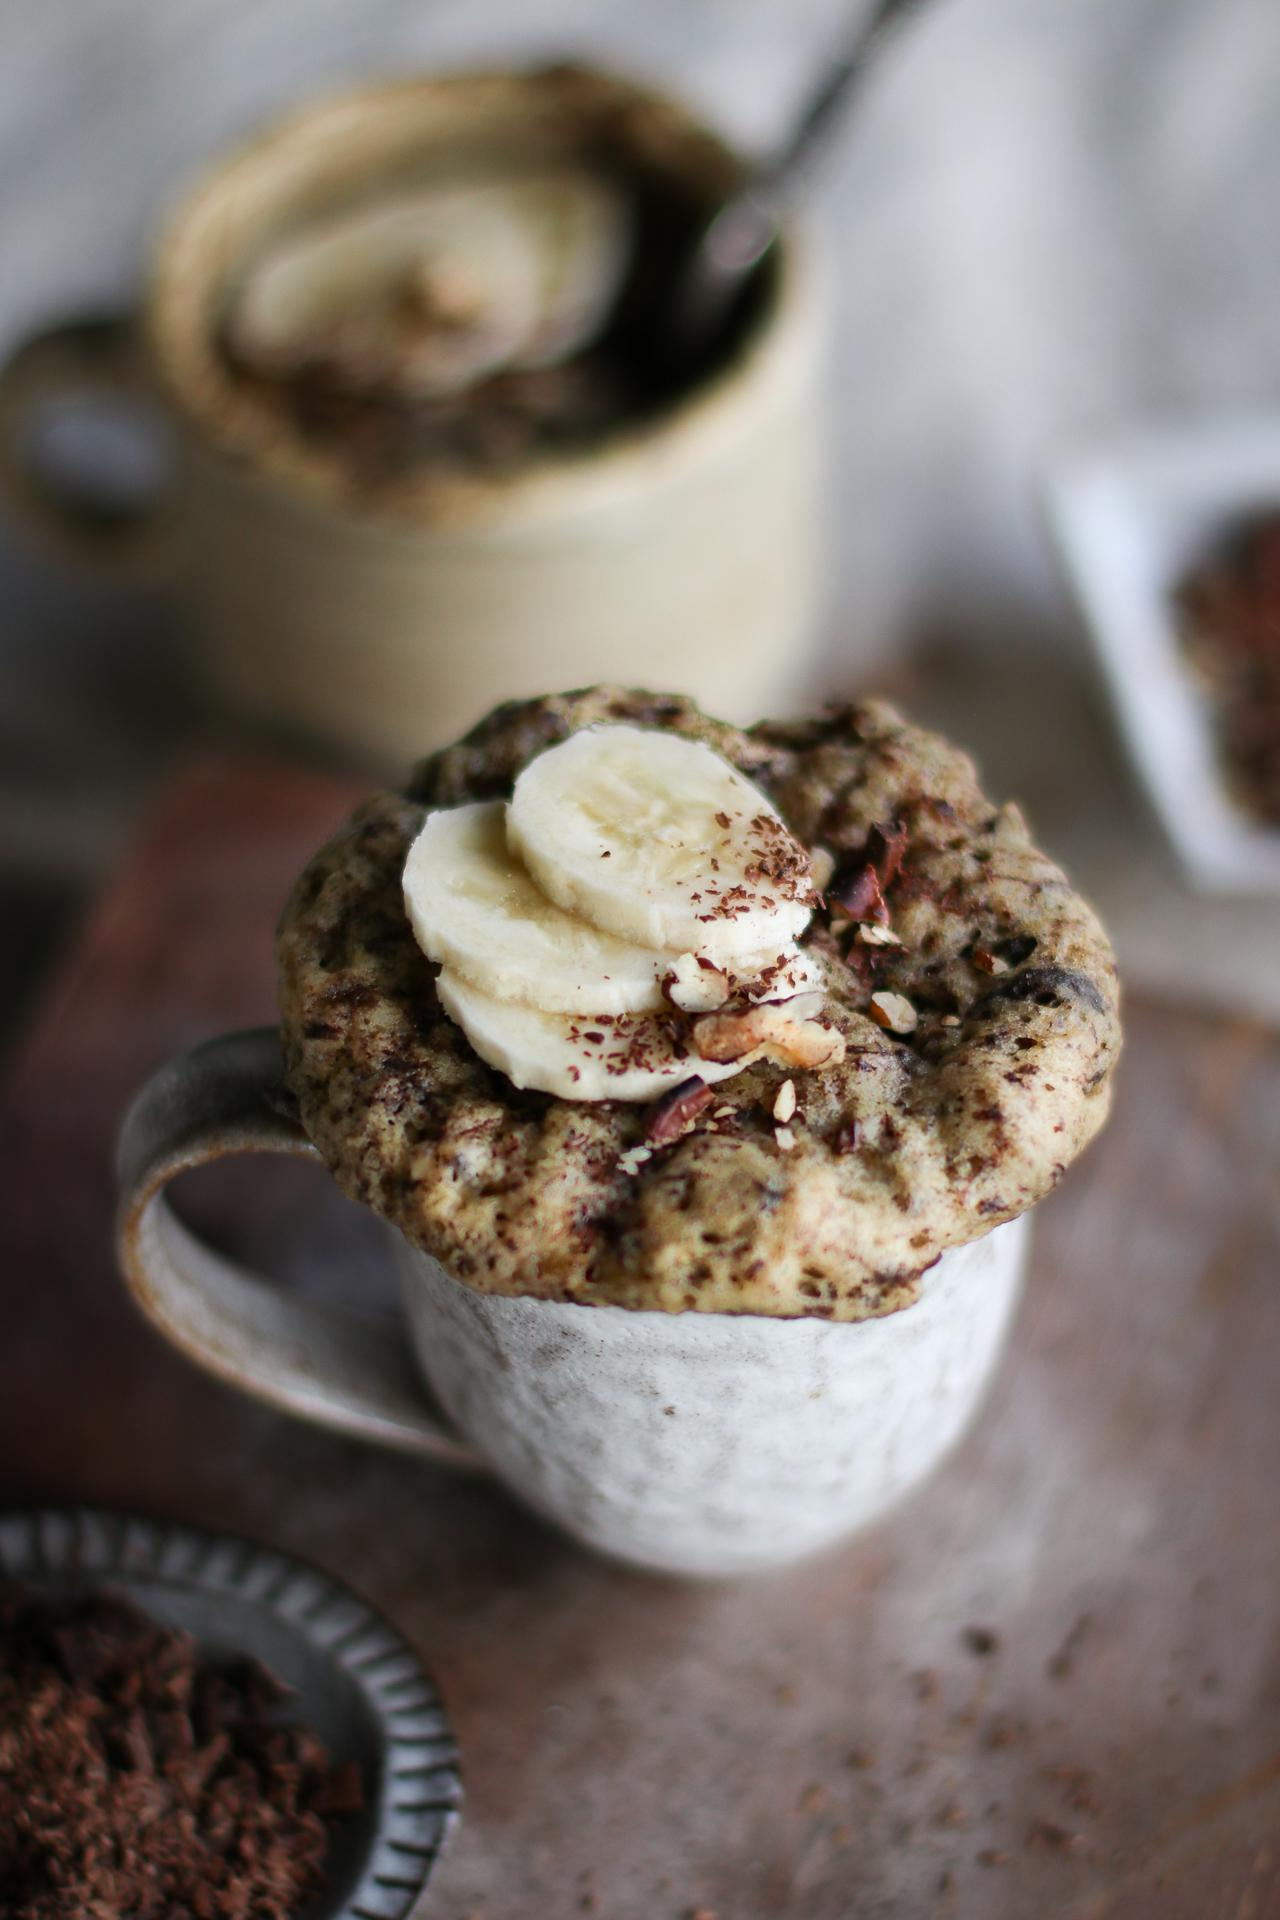 Main image of Banana Bread in a Mug